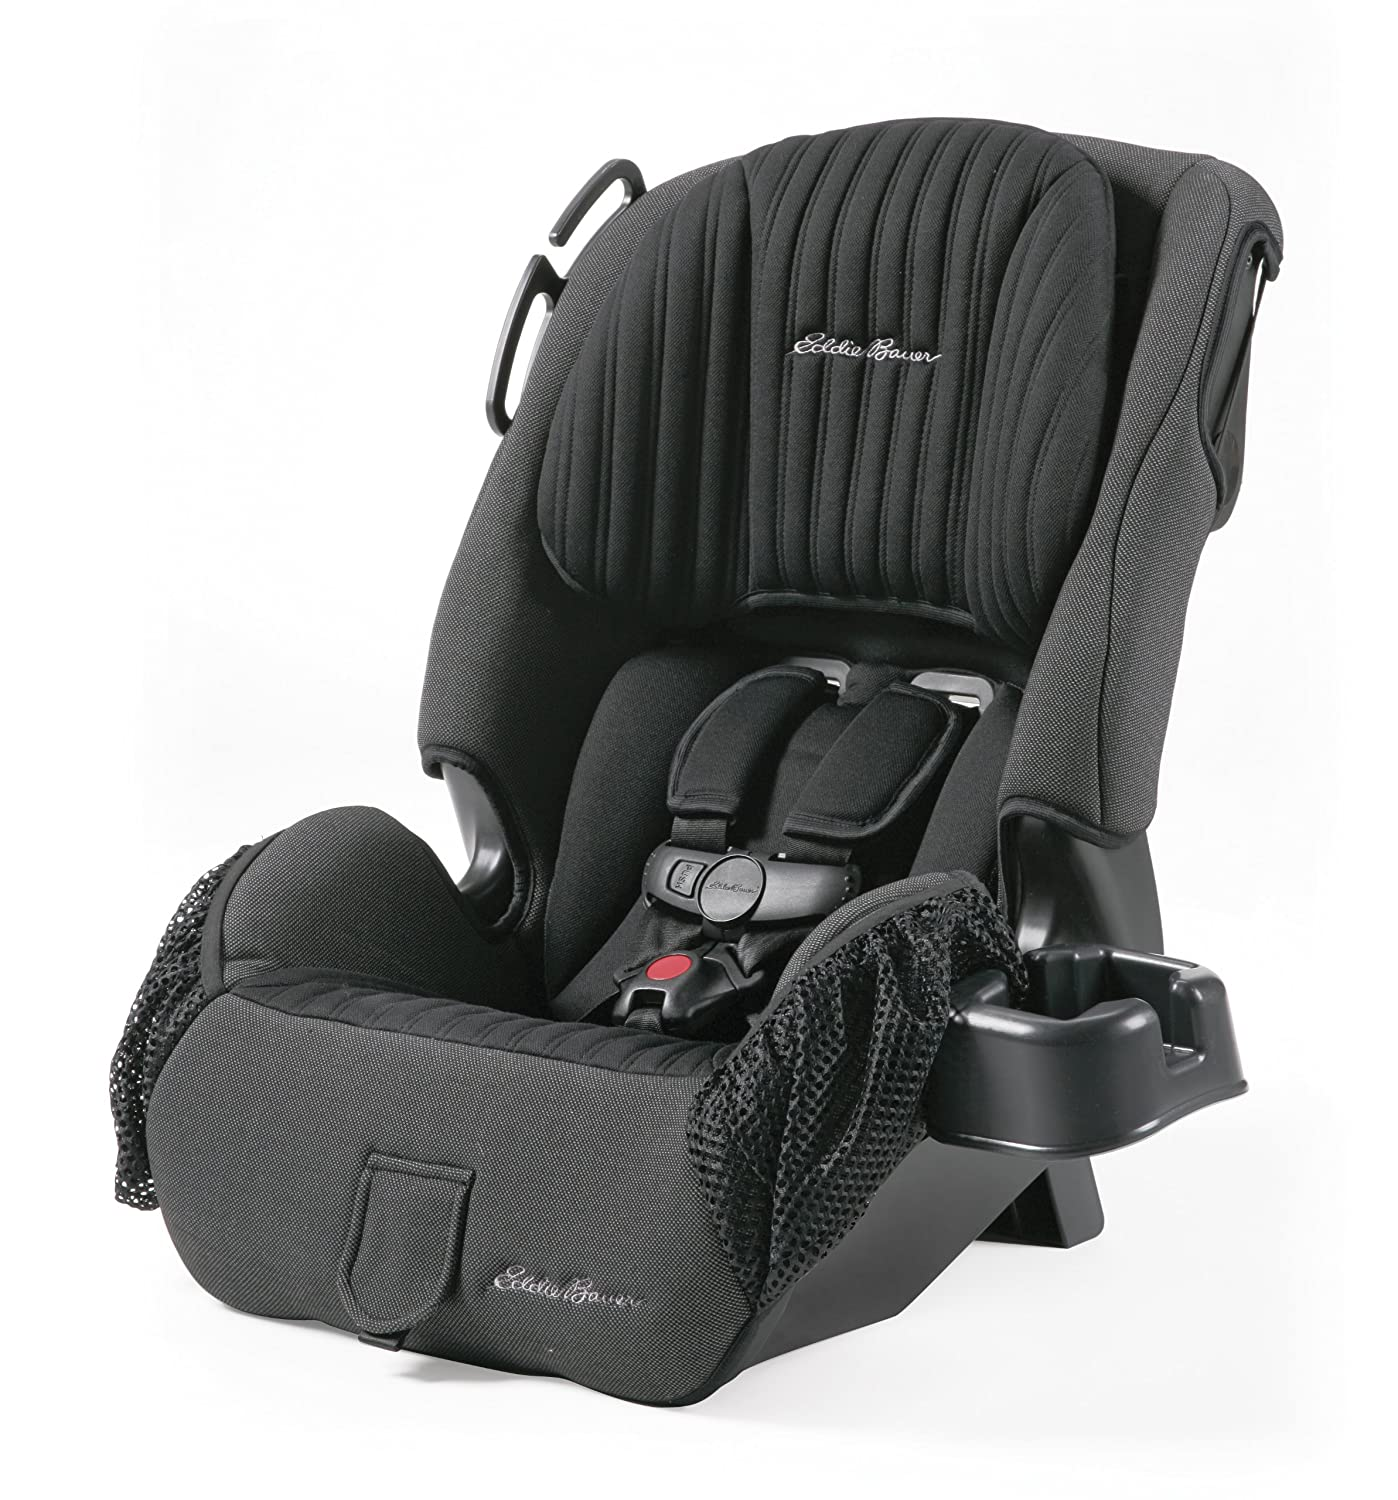 Amazon.com : Eddie Bauer Deluxe Convertible Car Seat, Granite (Discontinued  by Manufacturer) : Convertible Child Safety Car Seats : Baby